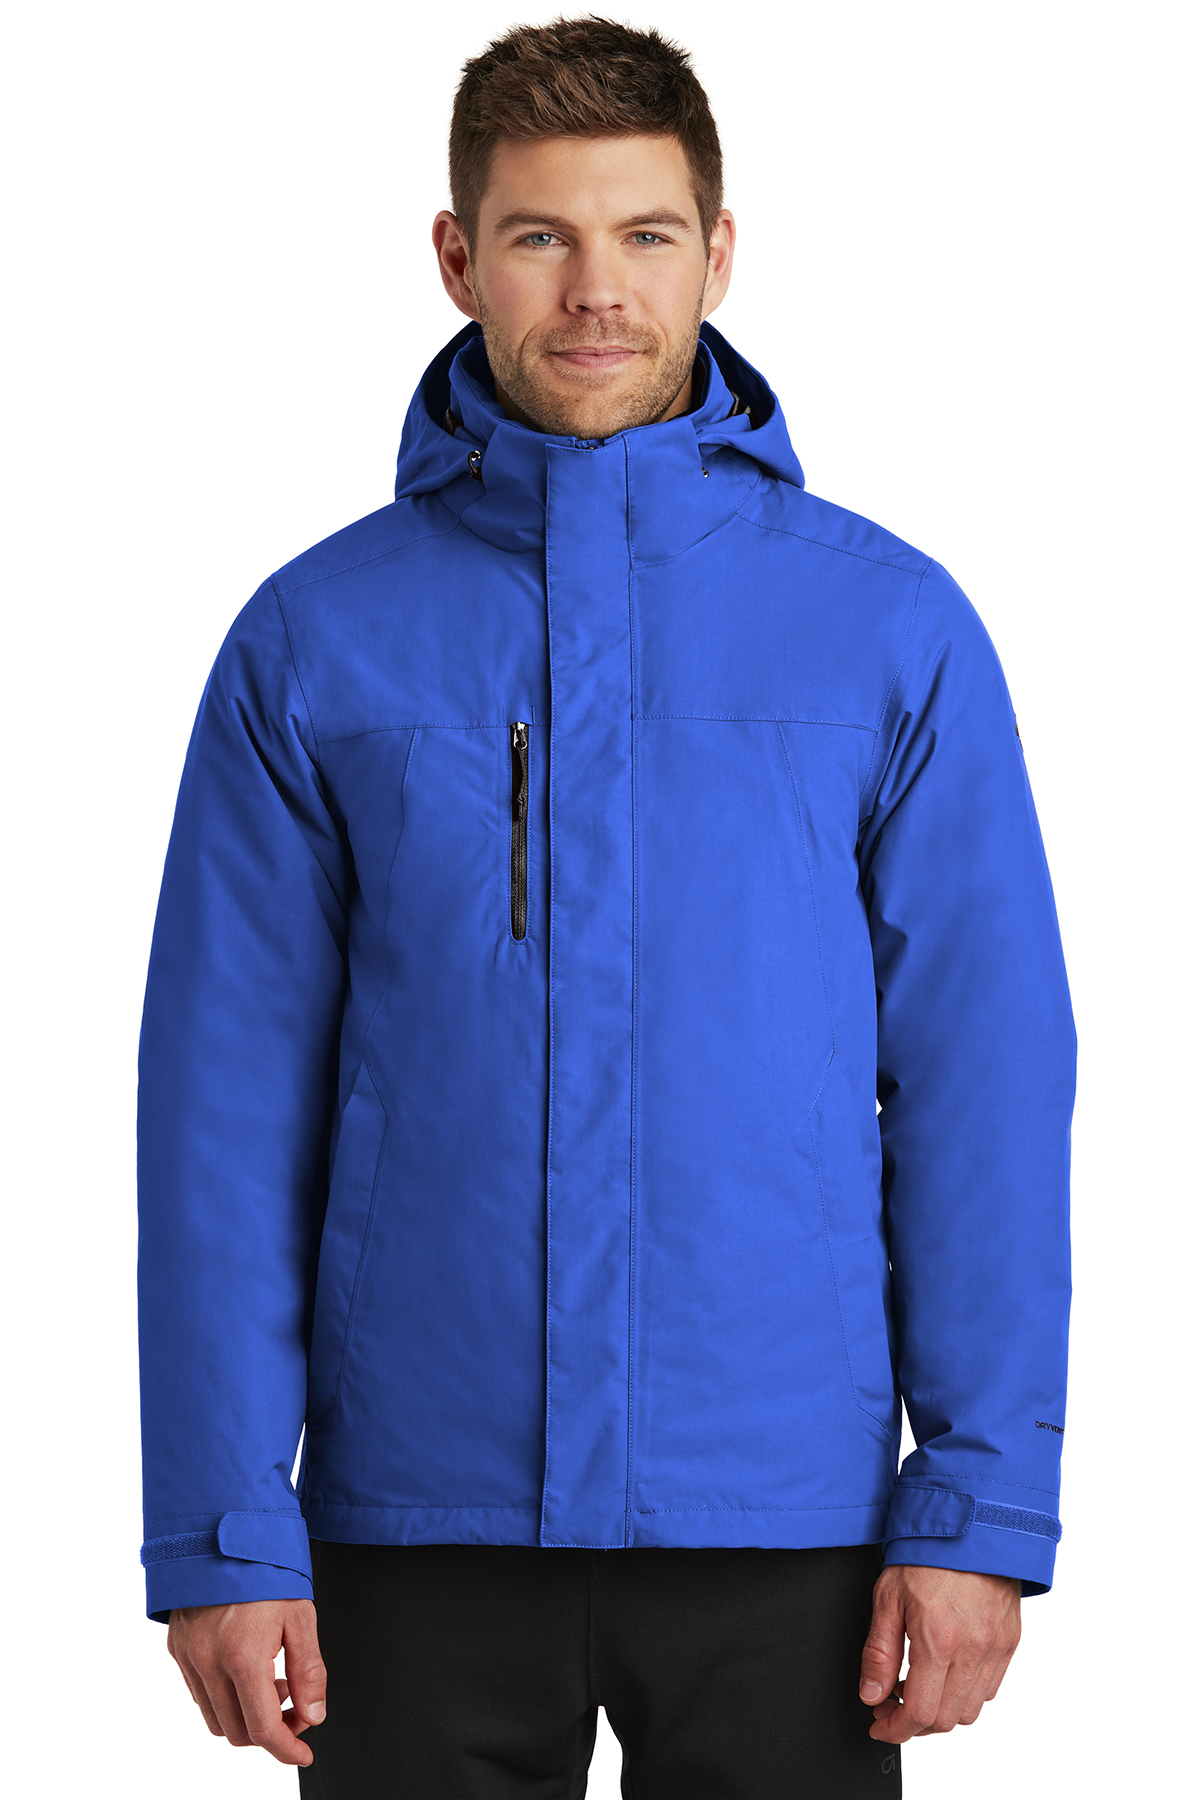 The North Face ® Traverse Triclimate ® 3-in-1 Jacket  9cb6c765cd5d